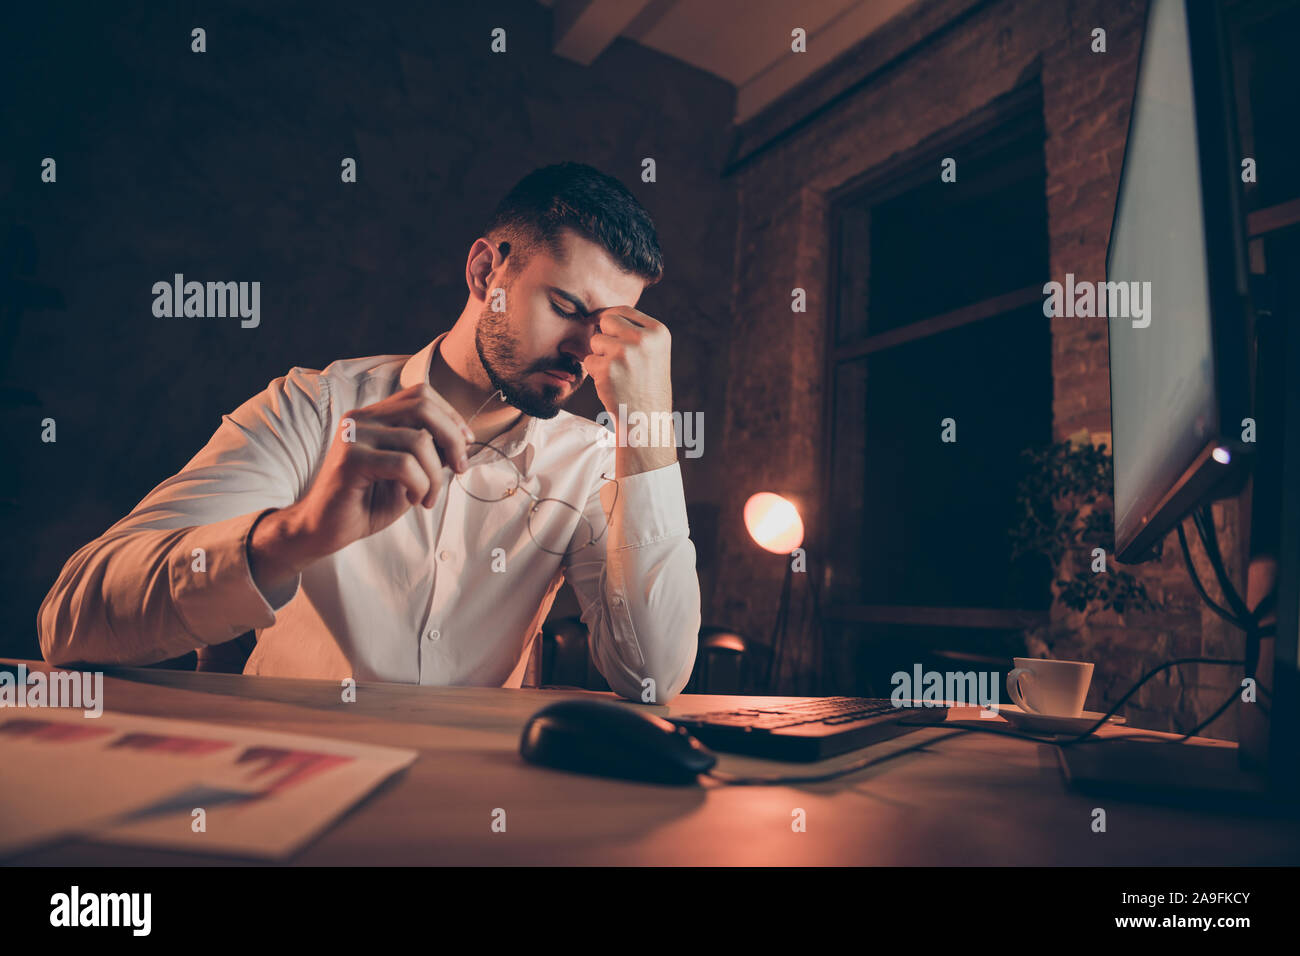 Low below angle view photo of tired businessman with head hurting migraine eyes aching putting glasses off sitting at desktop Stock Photo